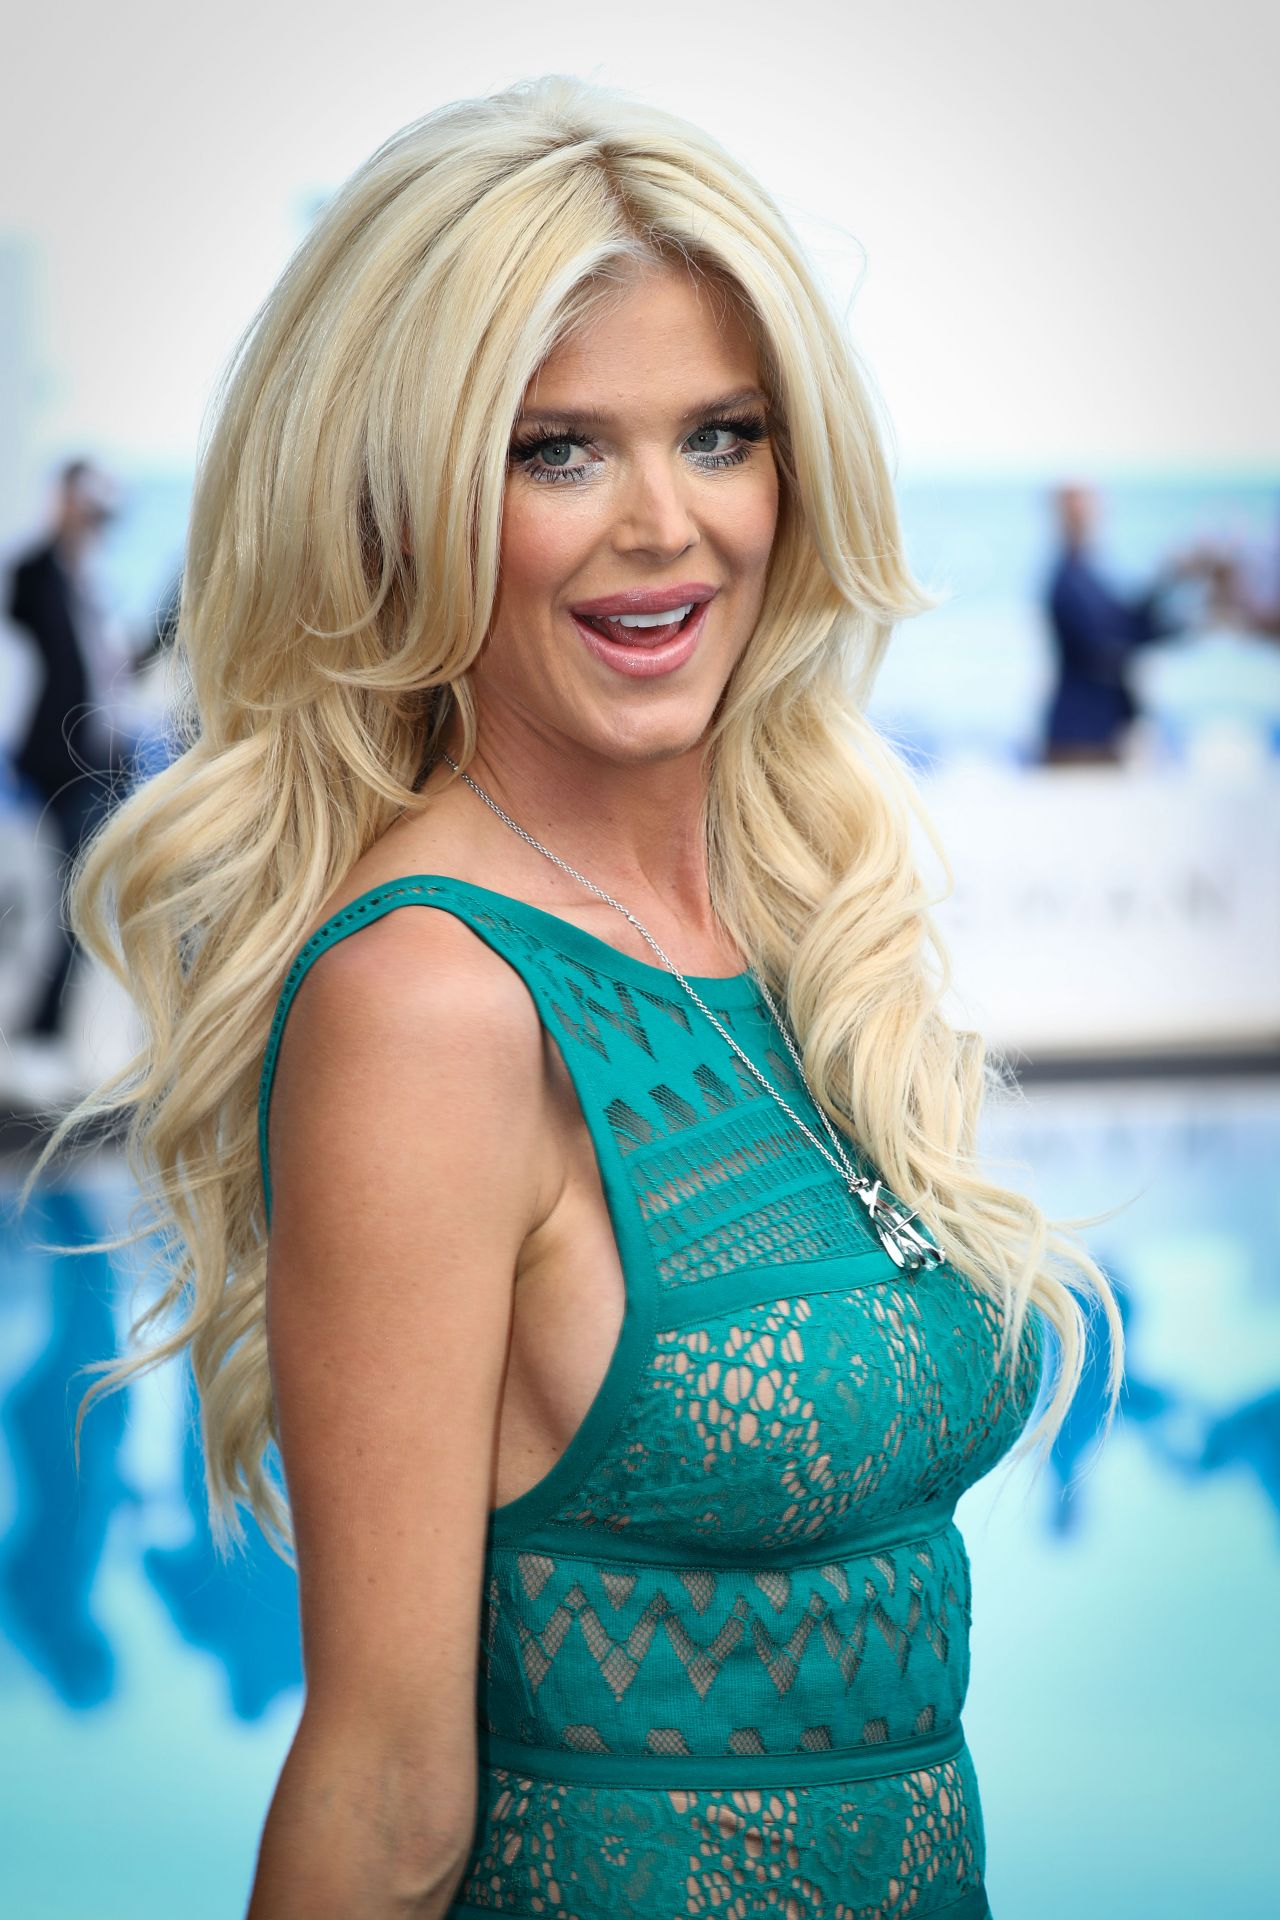 Victoria Silvstedt Amber Lounge Monaco May